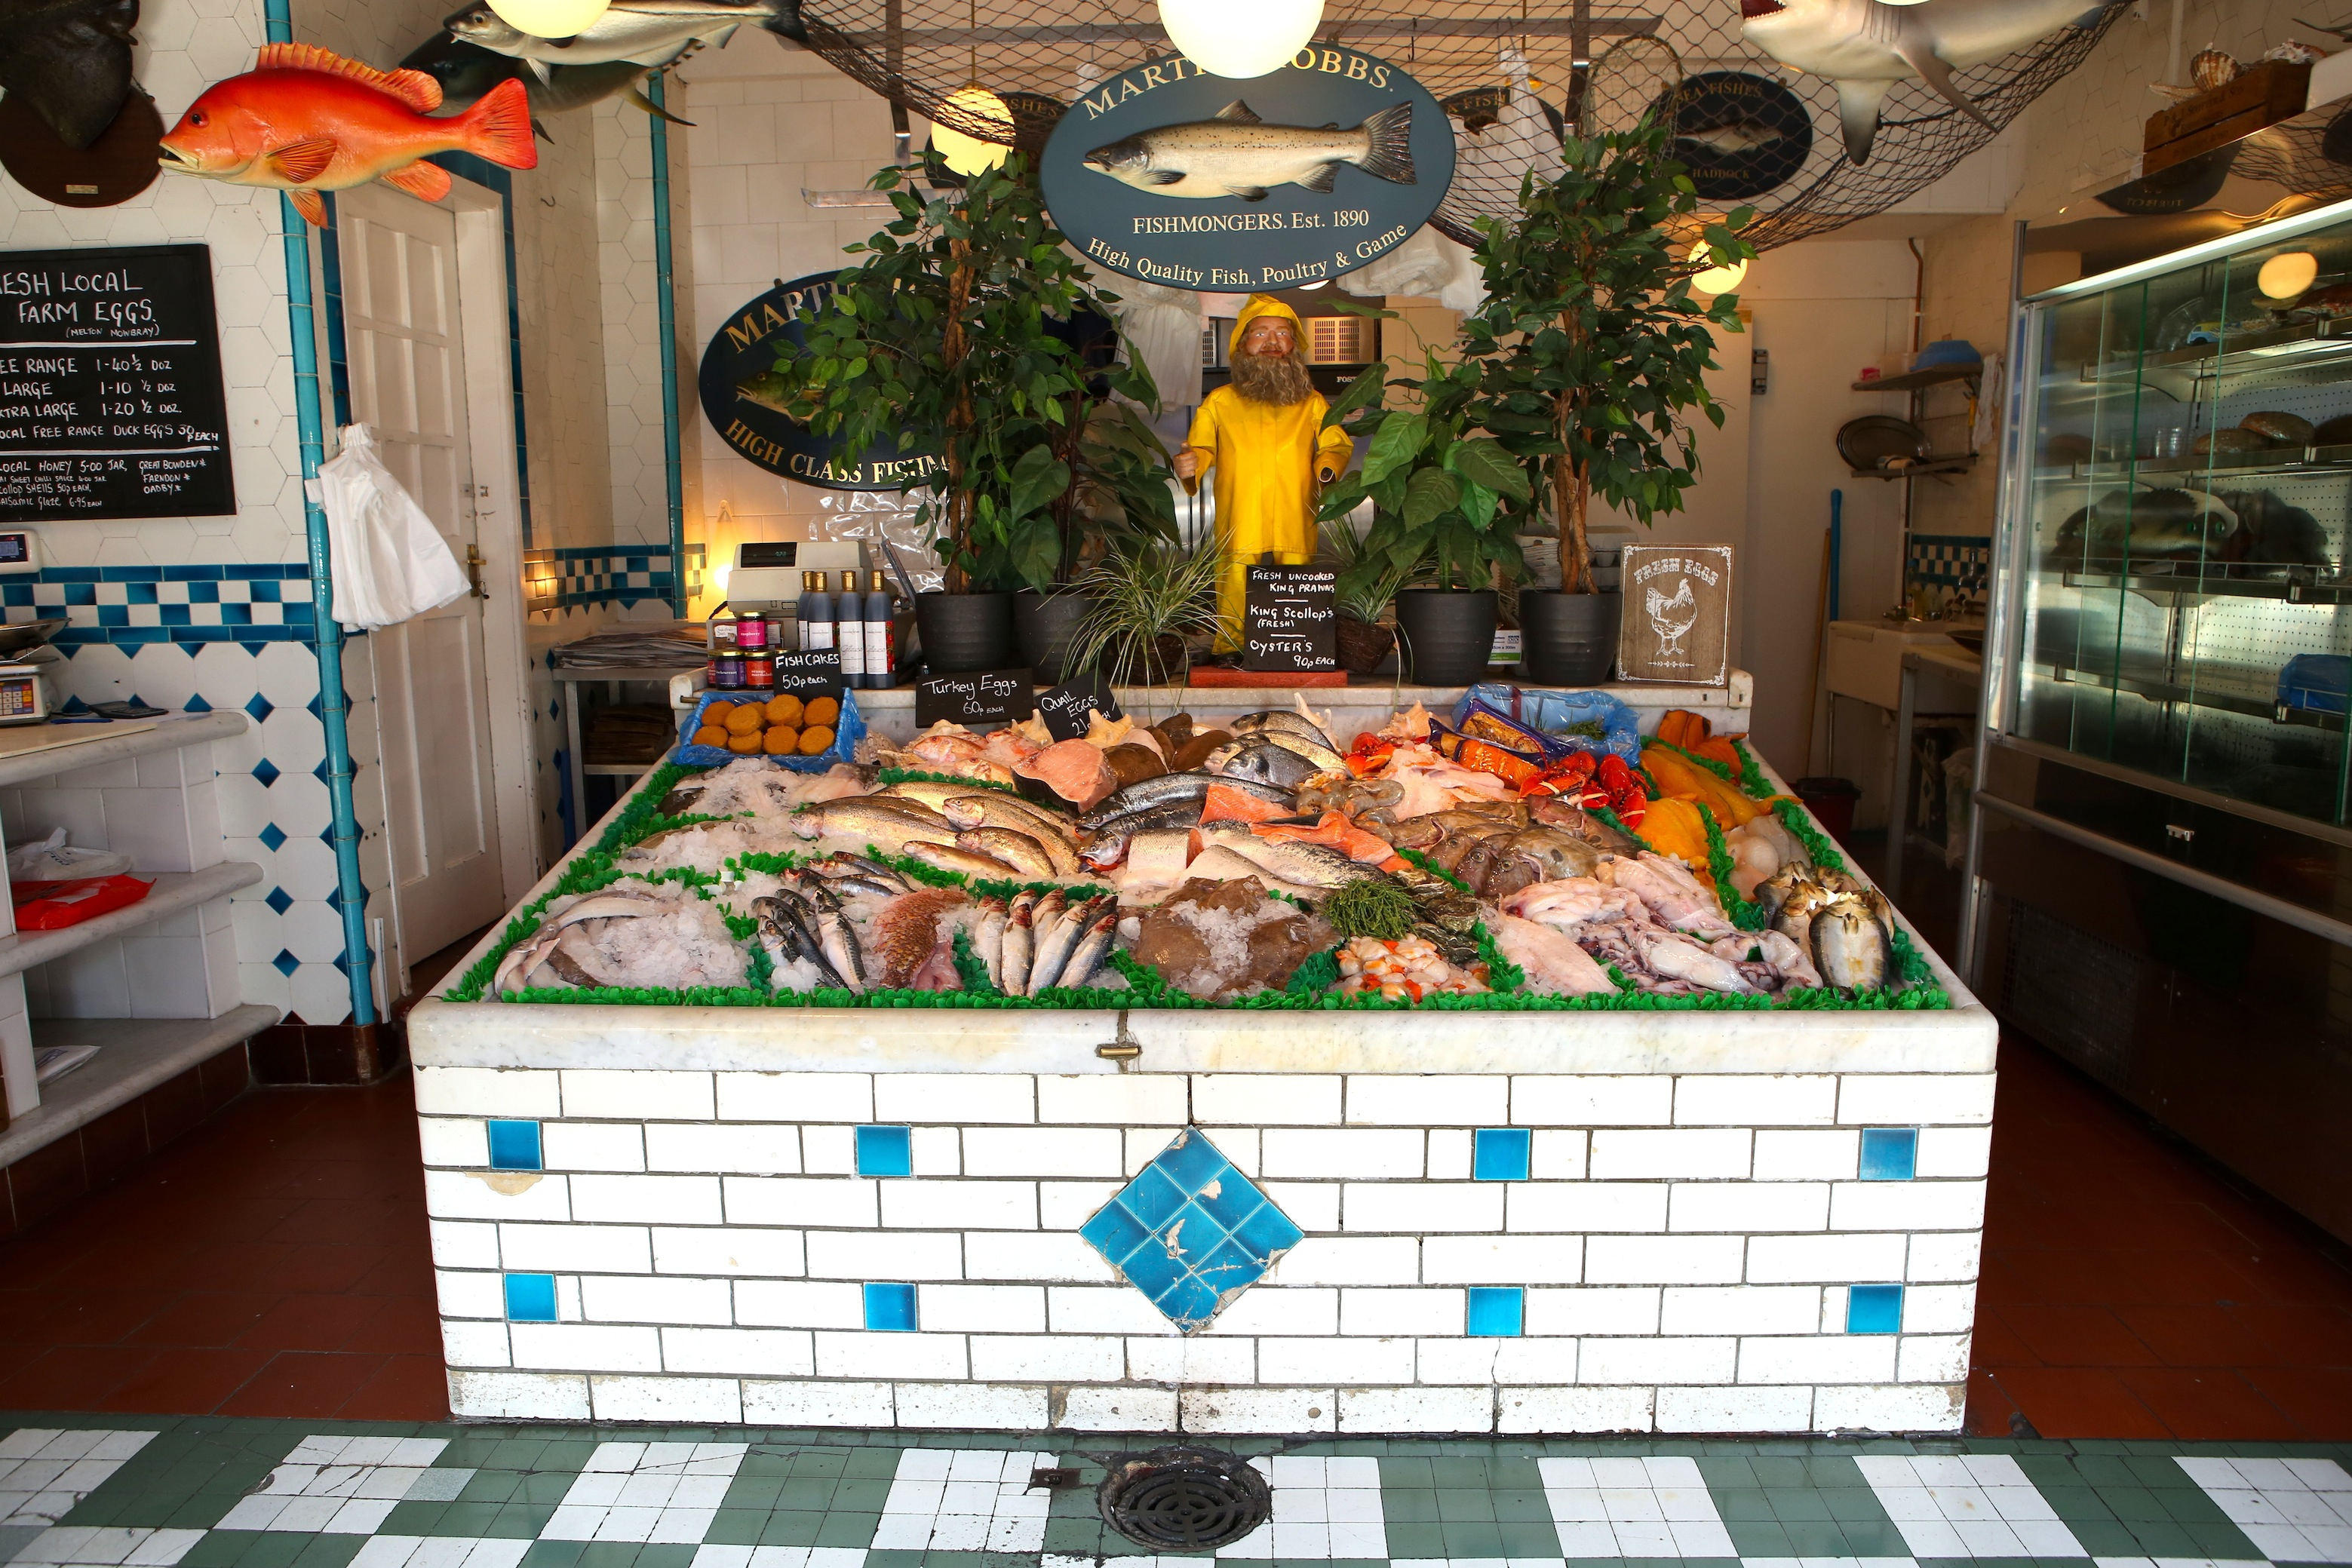 hobbs Fishmongers TOP